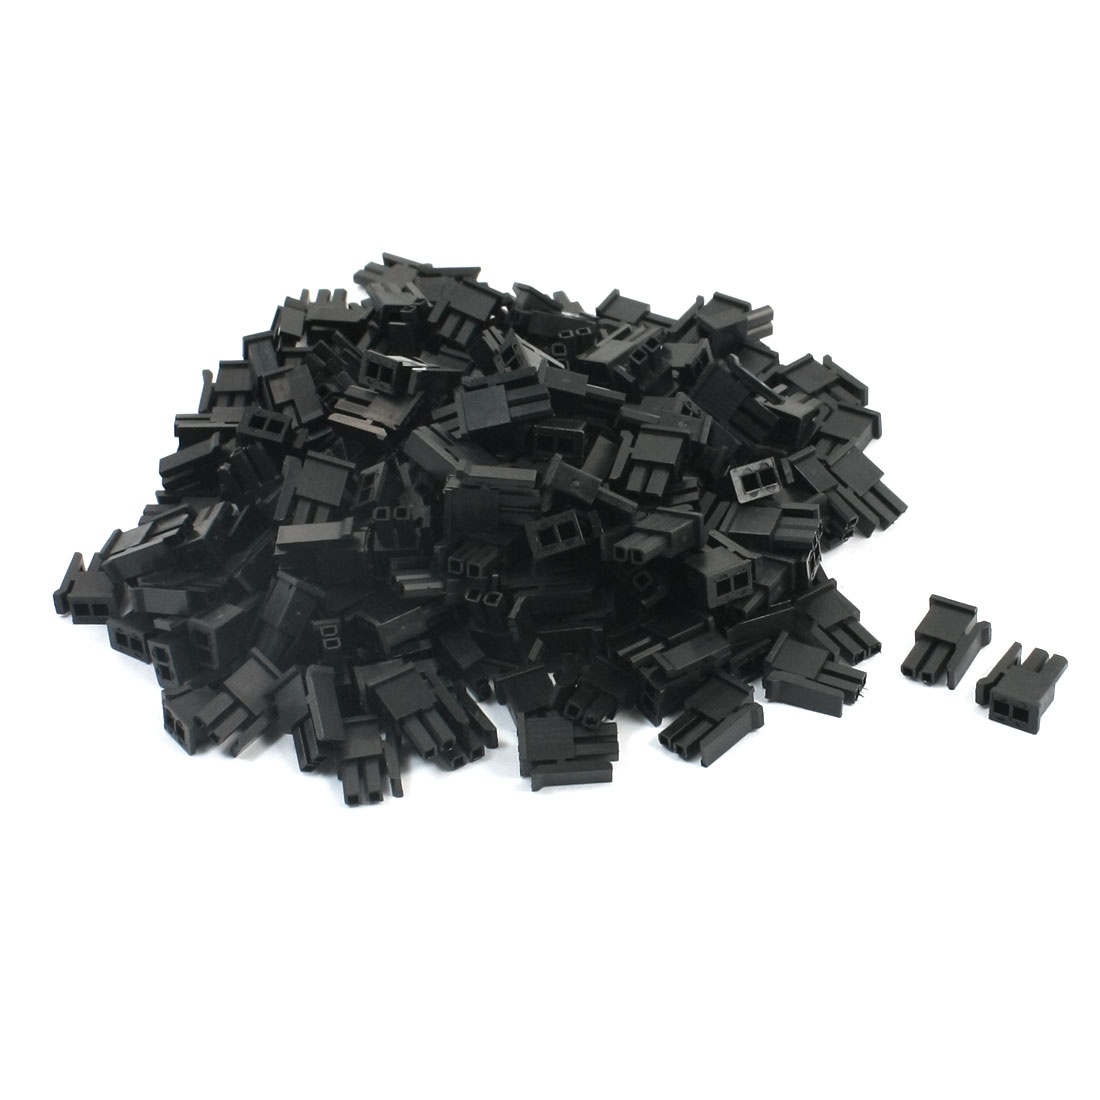 200Pcs 2.5mm Pitch Black Plastic Female Connector Plug Housing Shell w Clip for RC Model Lipo Battery Charger